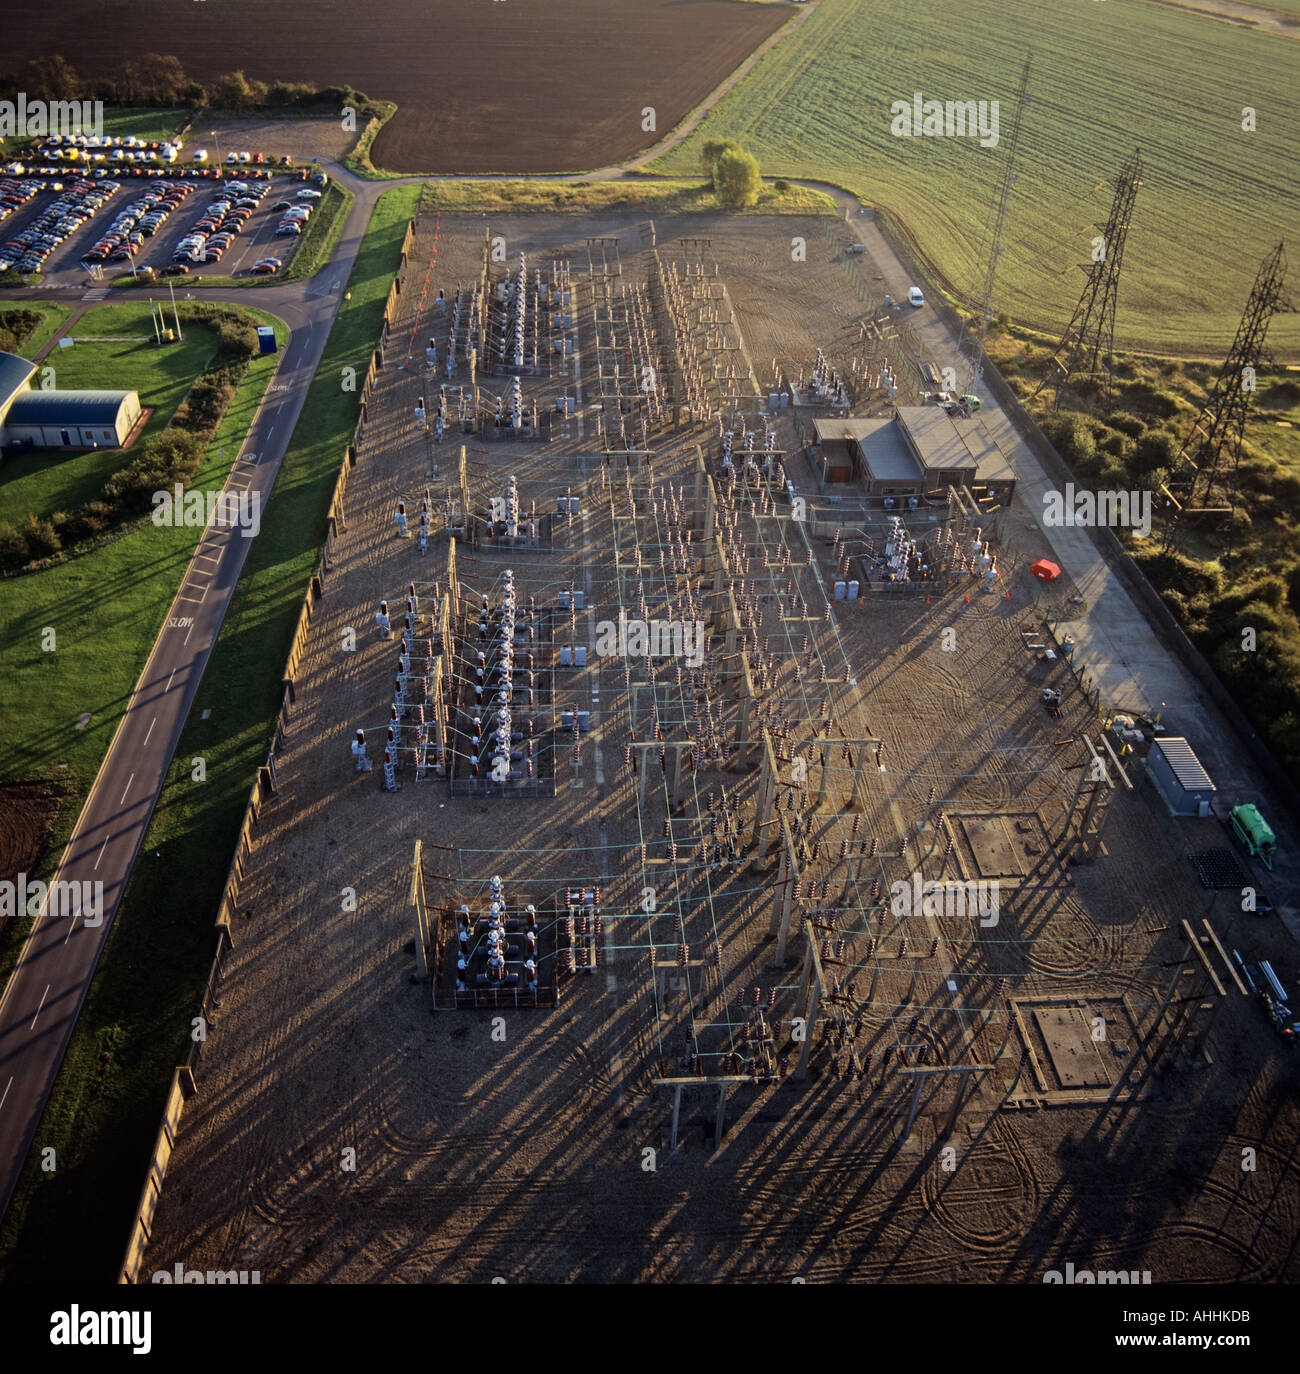 Electricity generation Bradwell Essex UK aerial view - Stock Image